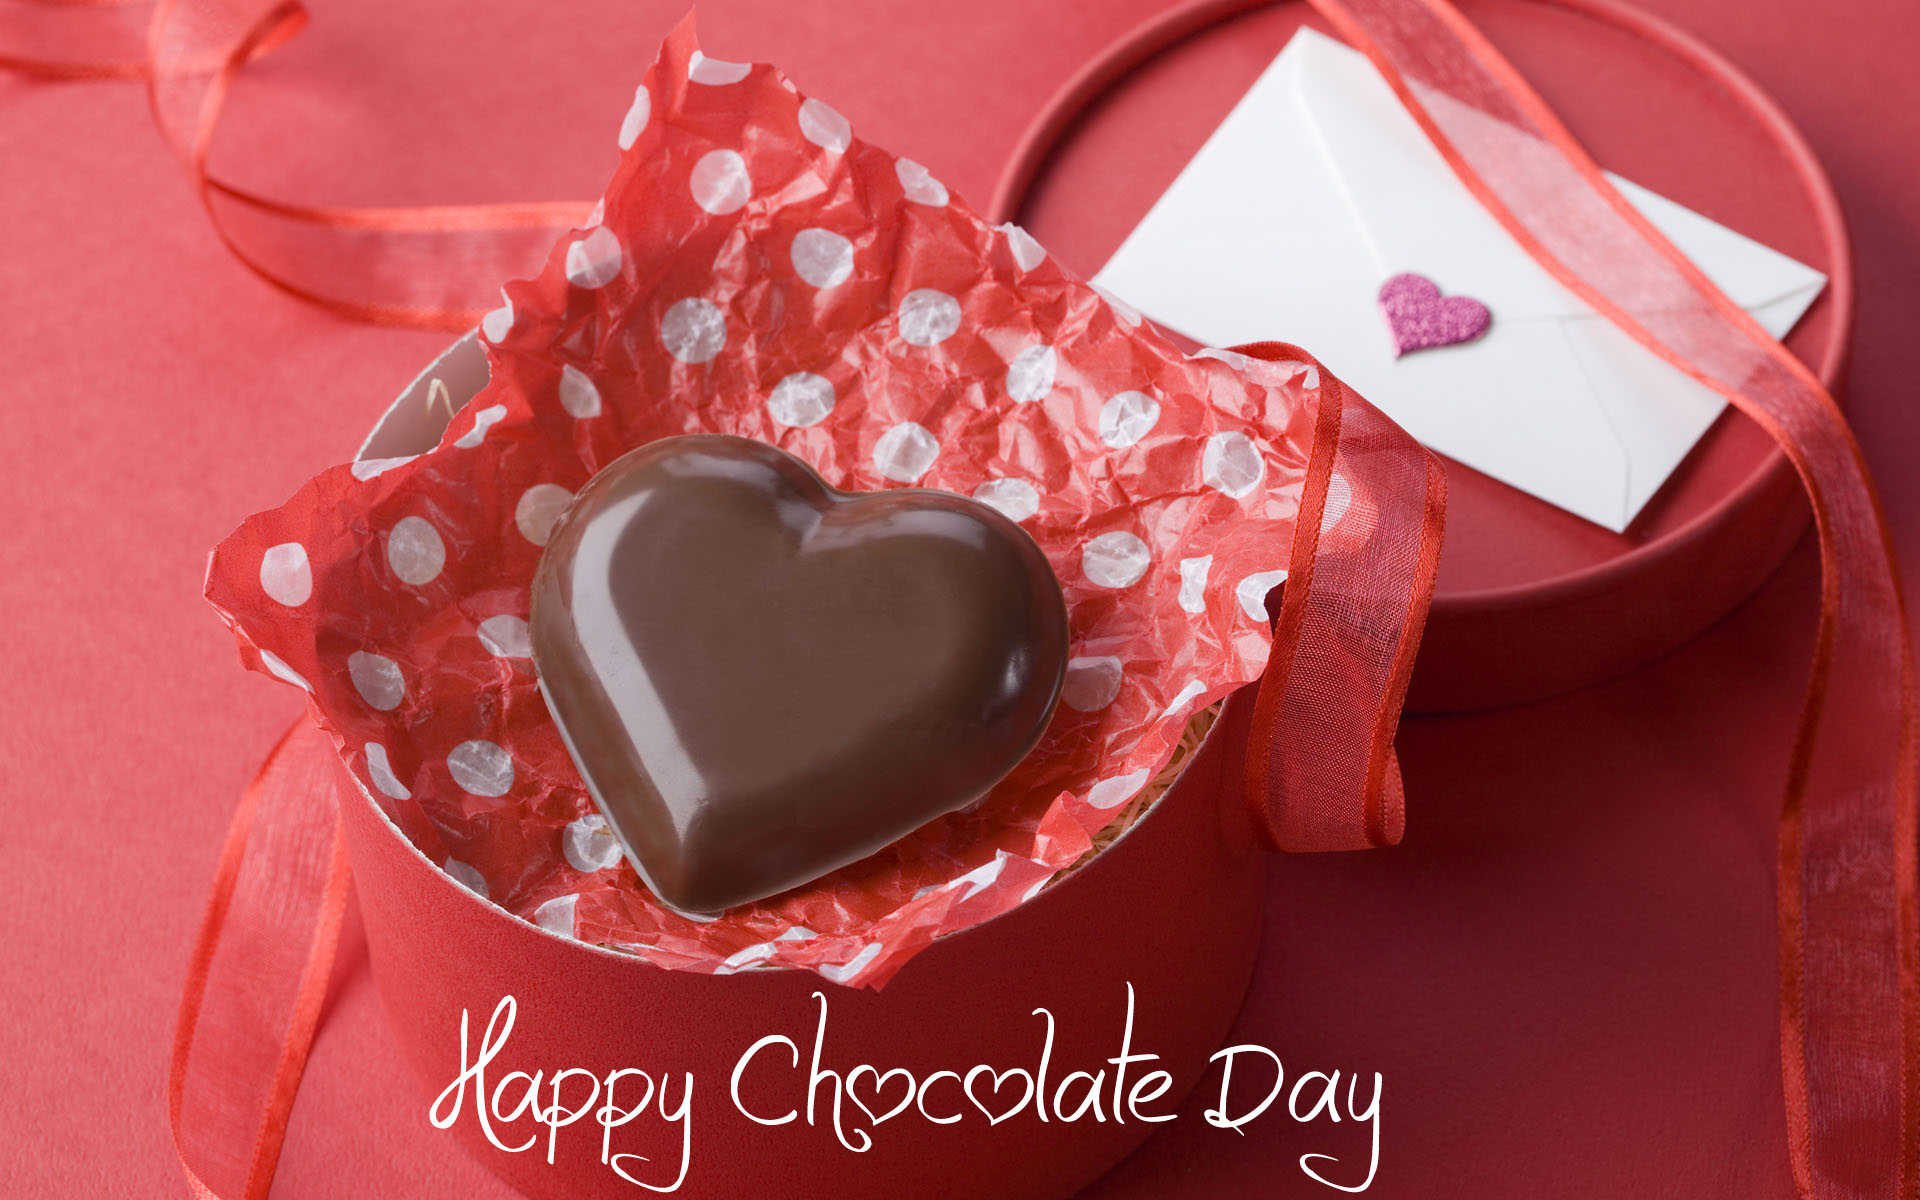 Chocolate day 2018 Images